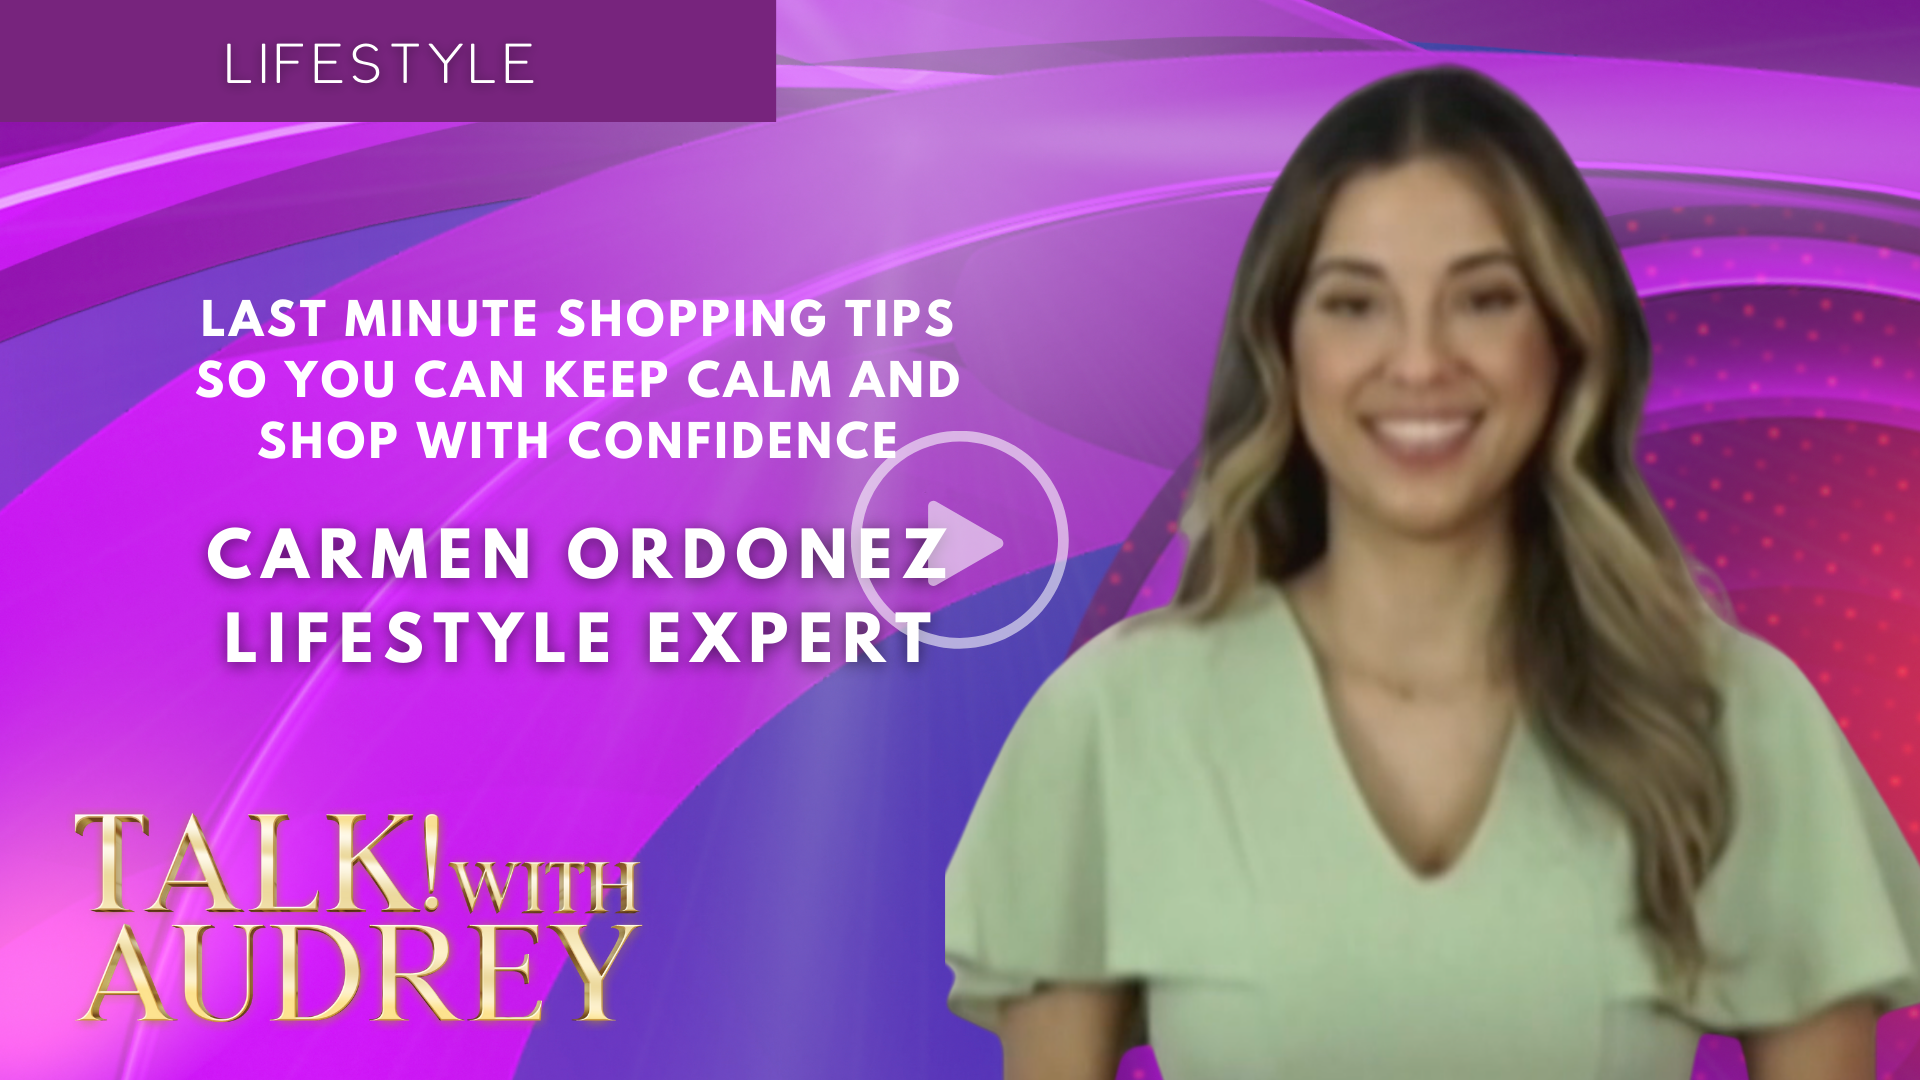 Carmen Ordonez – Last Minute Shopping Tips So You Can Keep Calm and Shop with Confidence